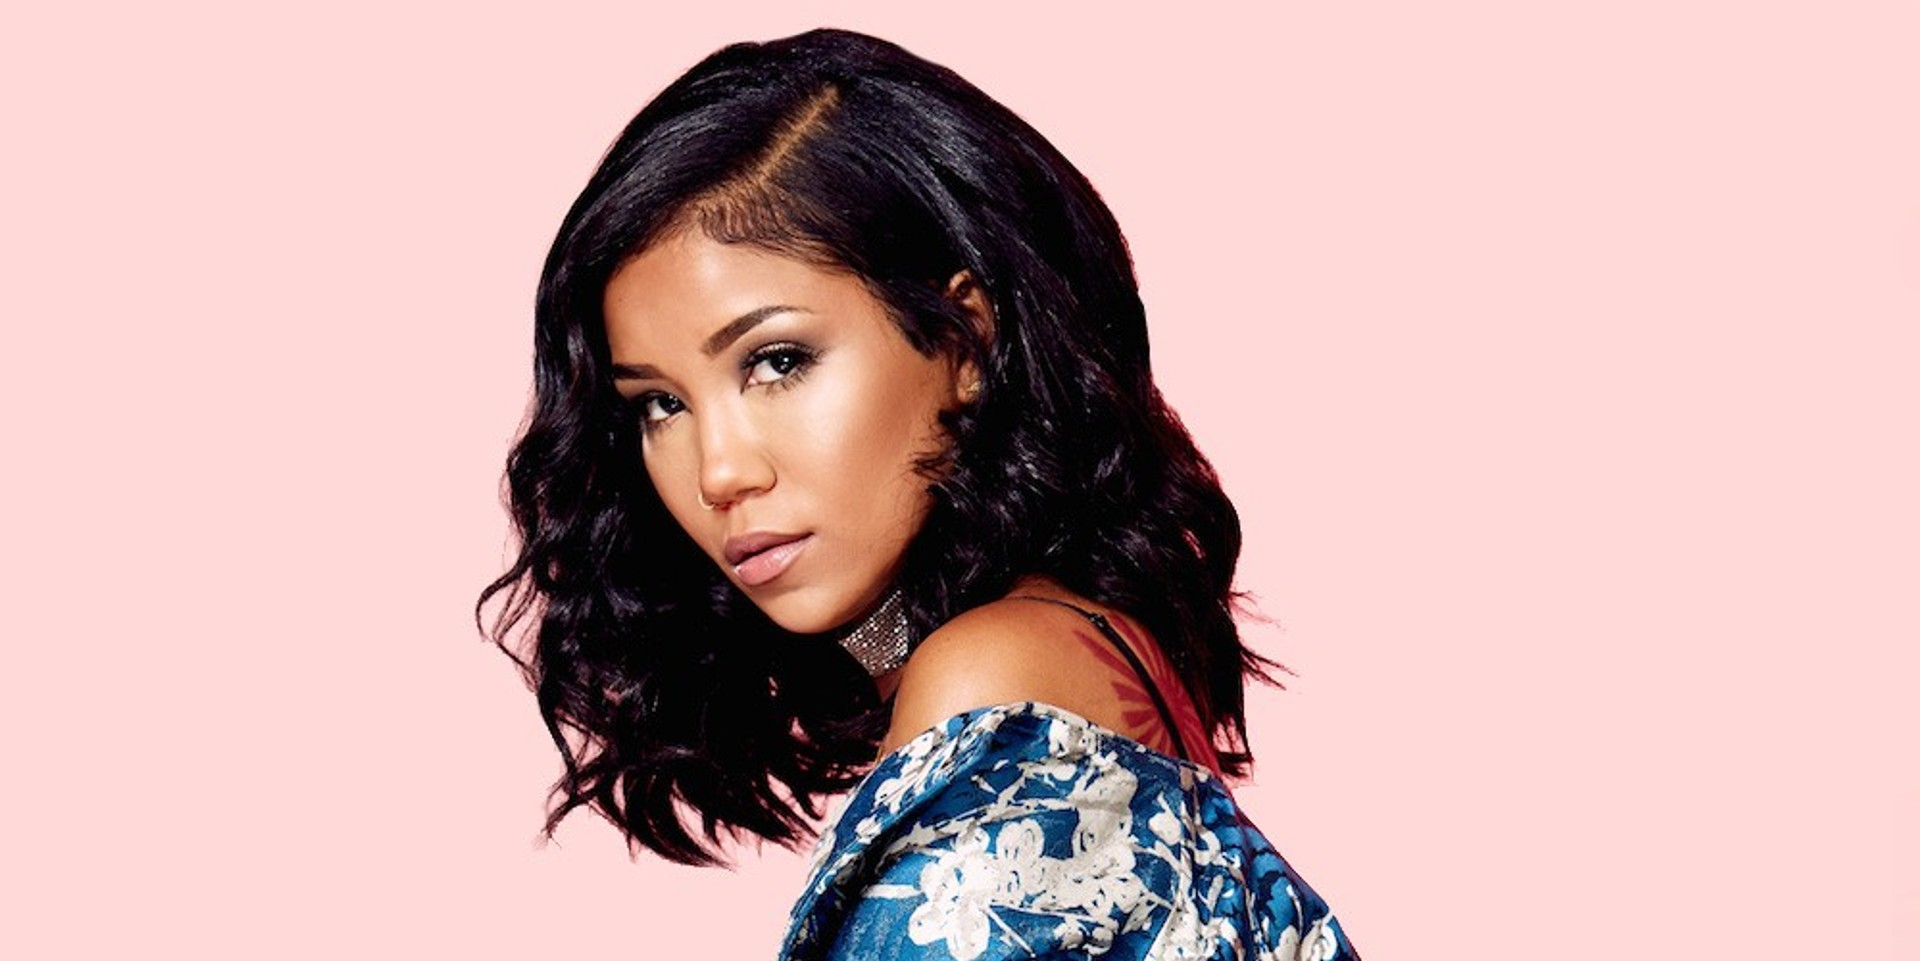 Jhené Aiko talks the Trip album, being a Pisces and a cat lady, and new music